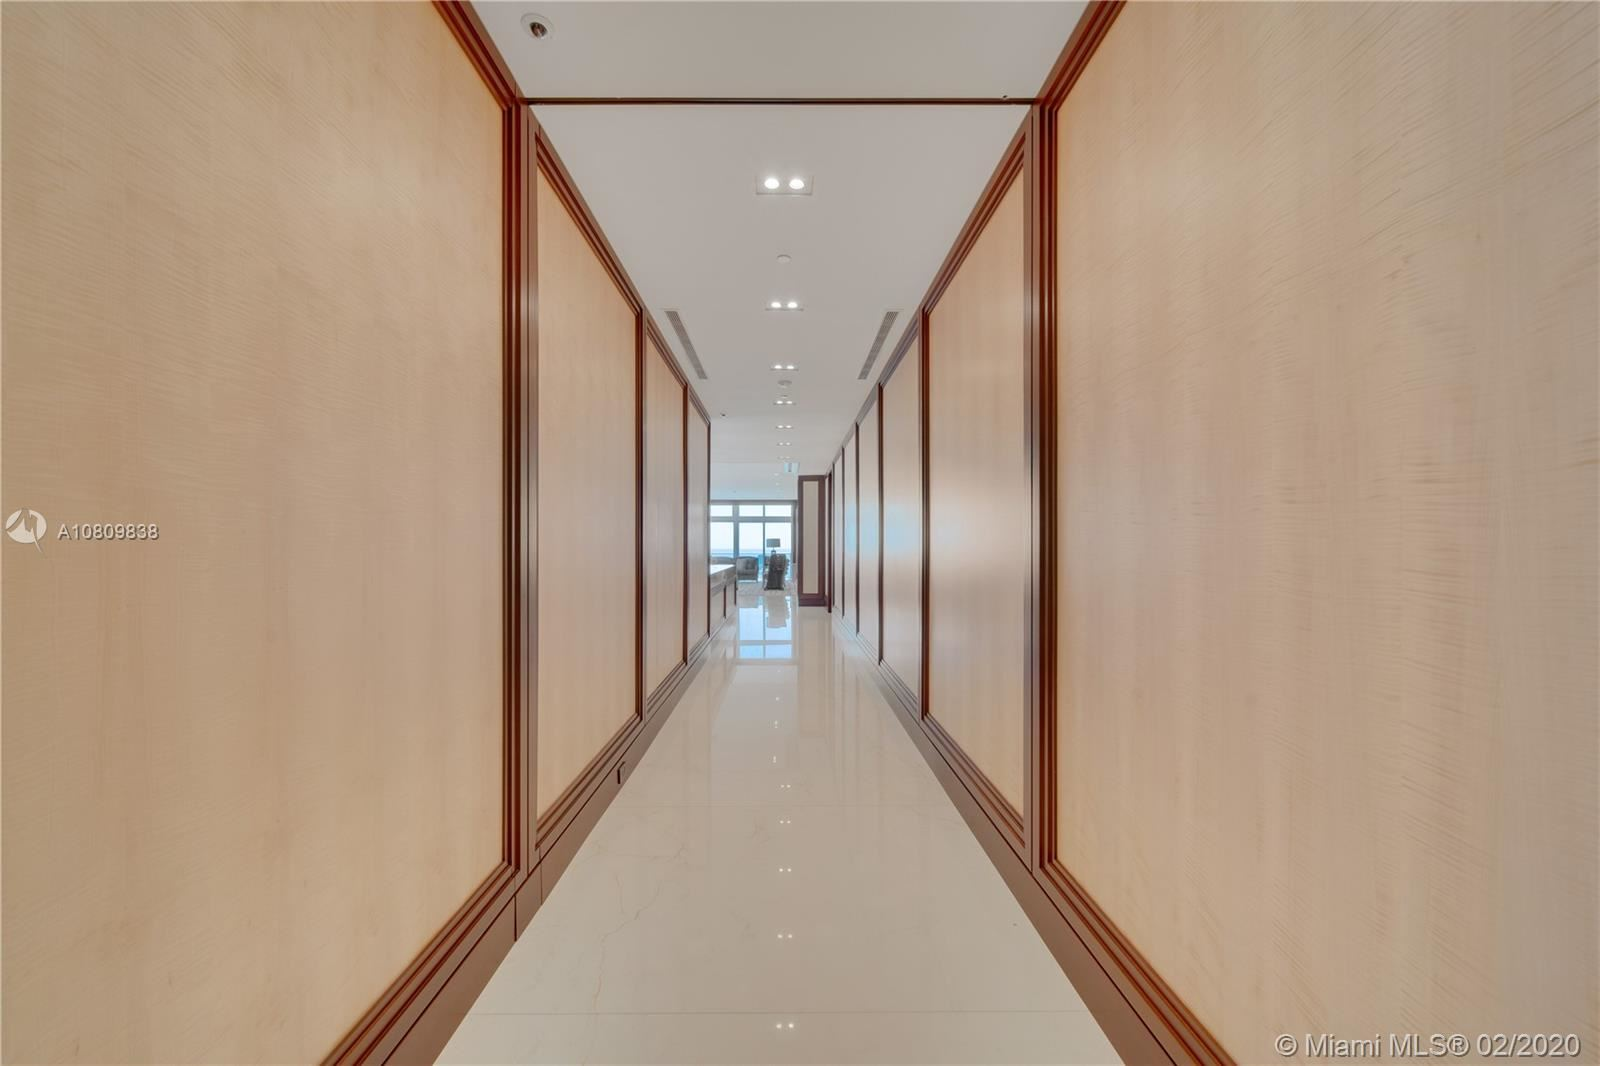 Photo 15 of Listing MLS a10809838 in 3737 Collins Ave #PH-4 Miami Beach FL 33140